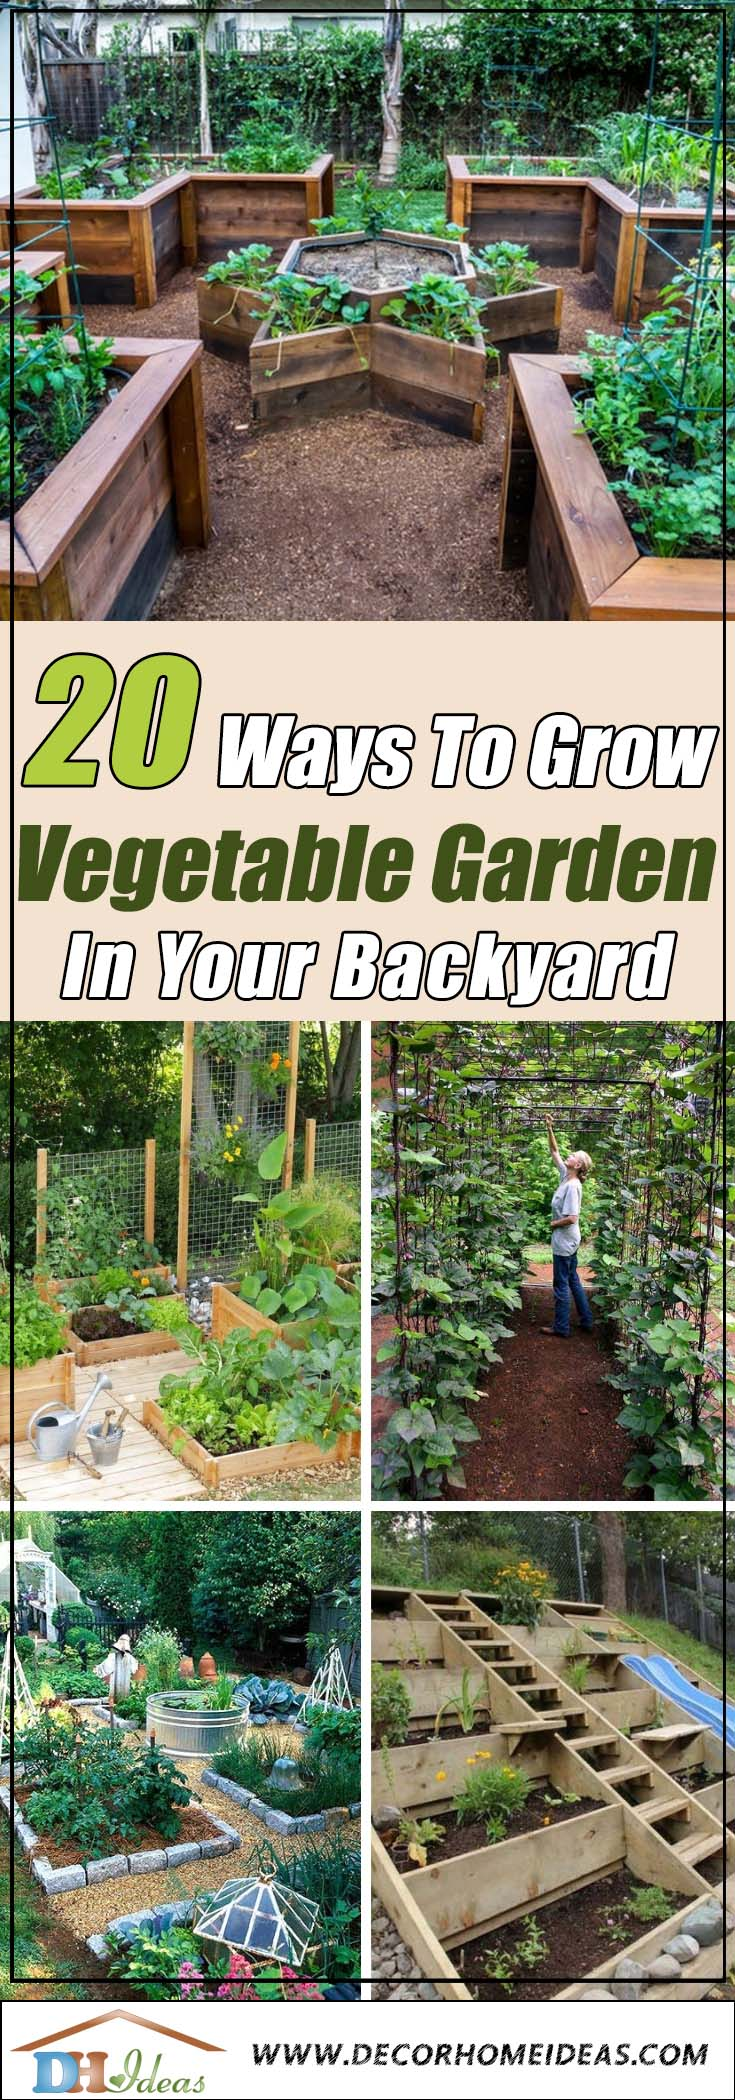 How To Grow Vegetable Garden